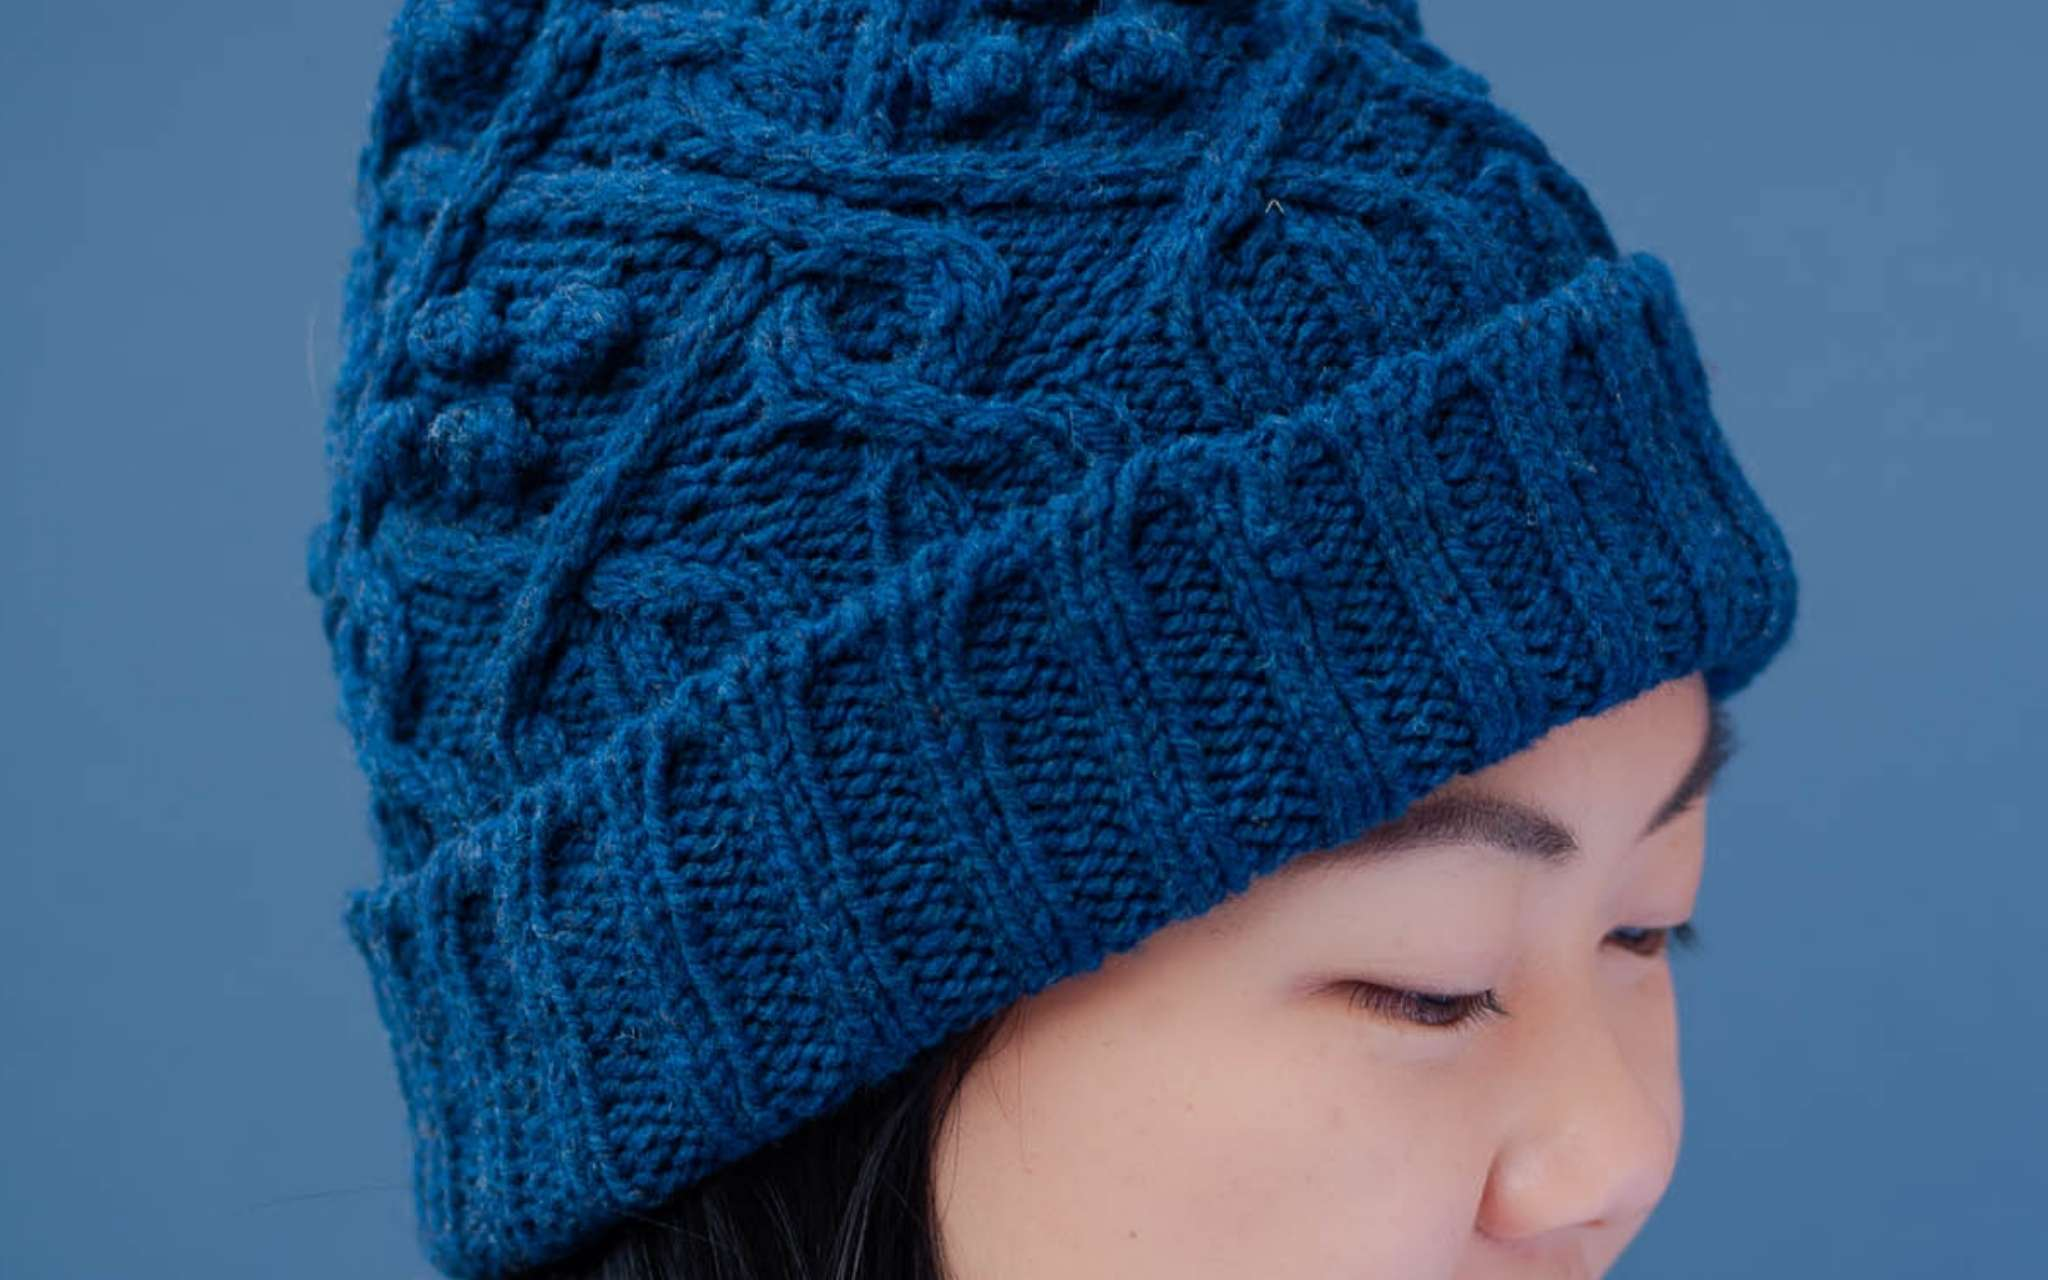 a close up of the brim of a blue cabled hat with a ribbed, folded edge